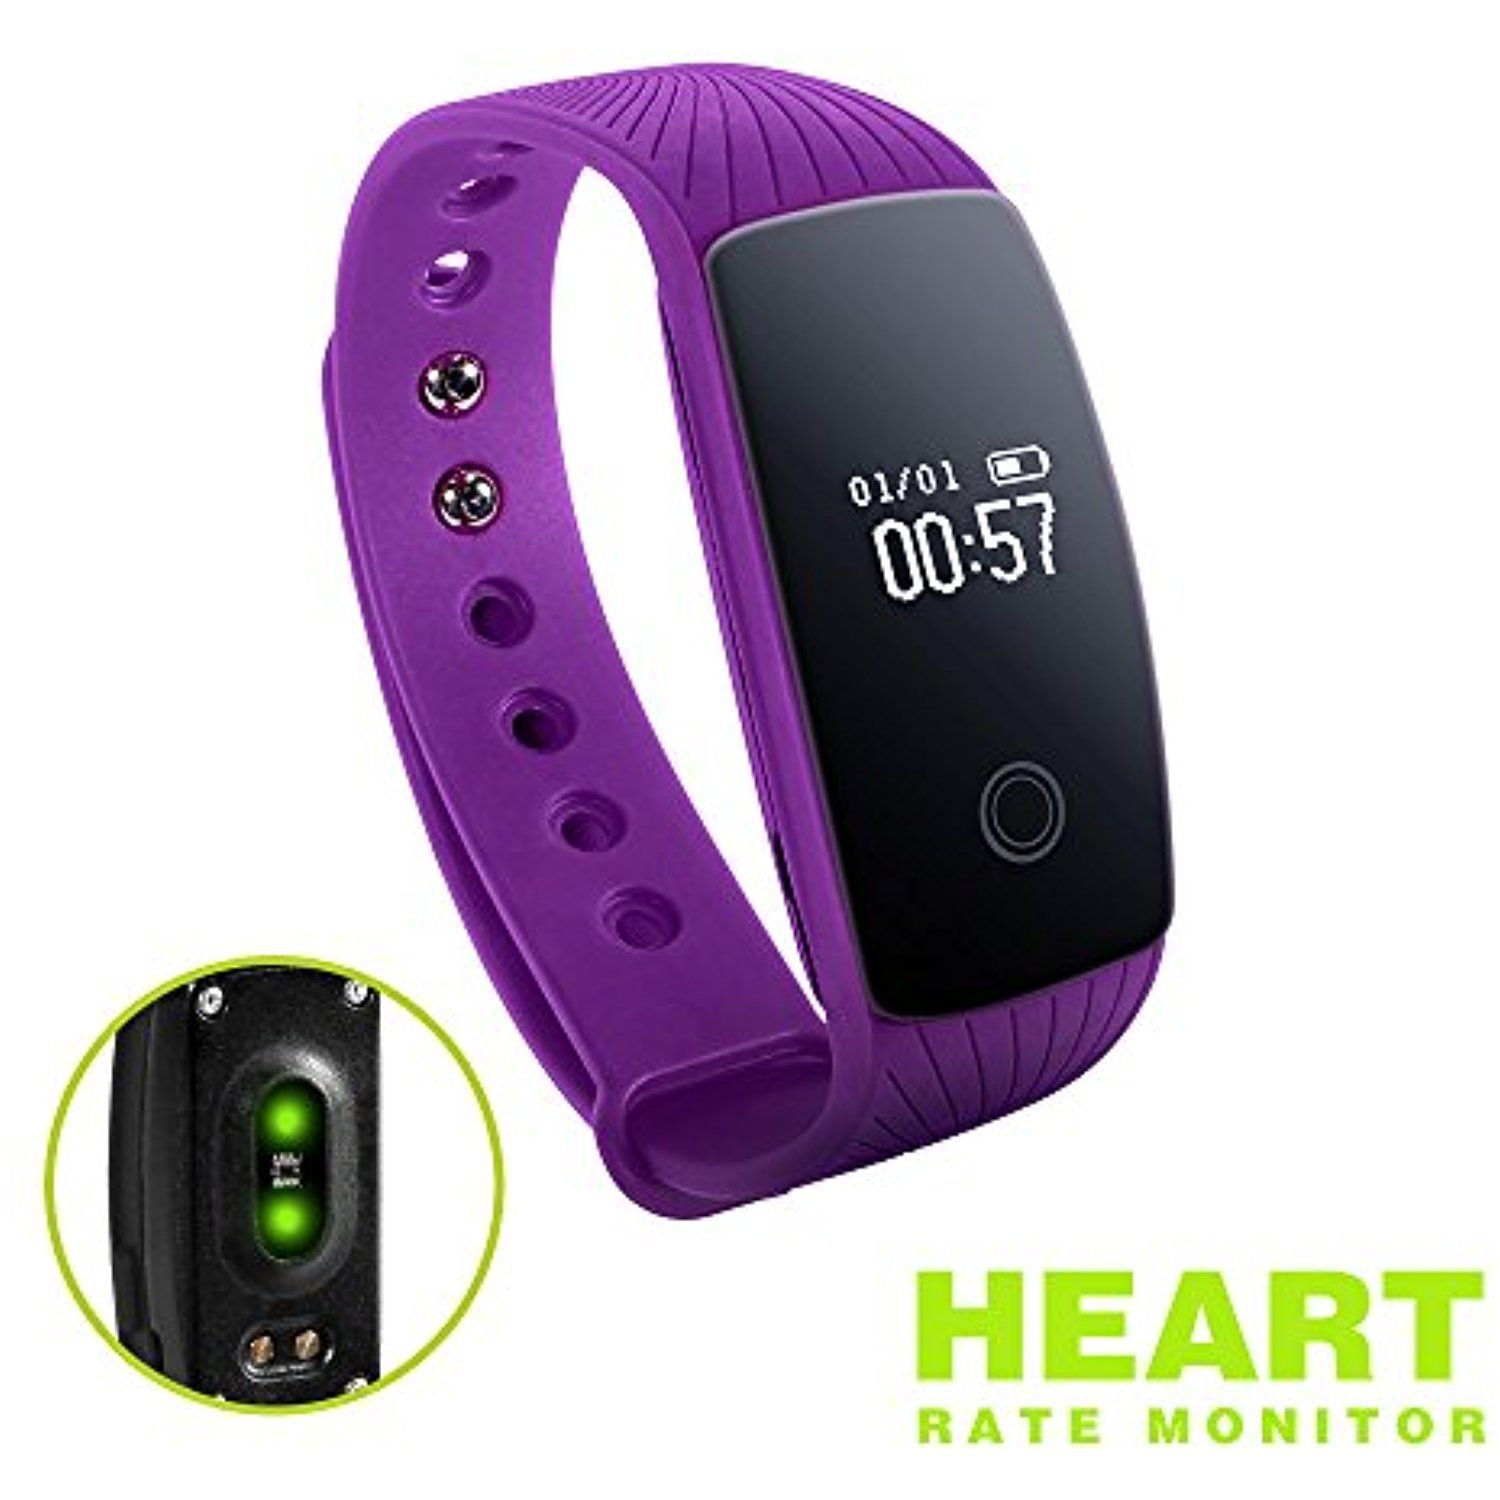 Fitness Tracker Id107 High Accuracy Signal Heart Rate Monitor Activities Record Ip67 Waterproof Touch And Physic Fitness Tracker Smart Bracelet Fitness Monitor